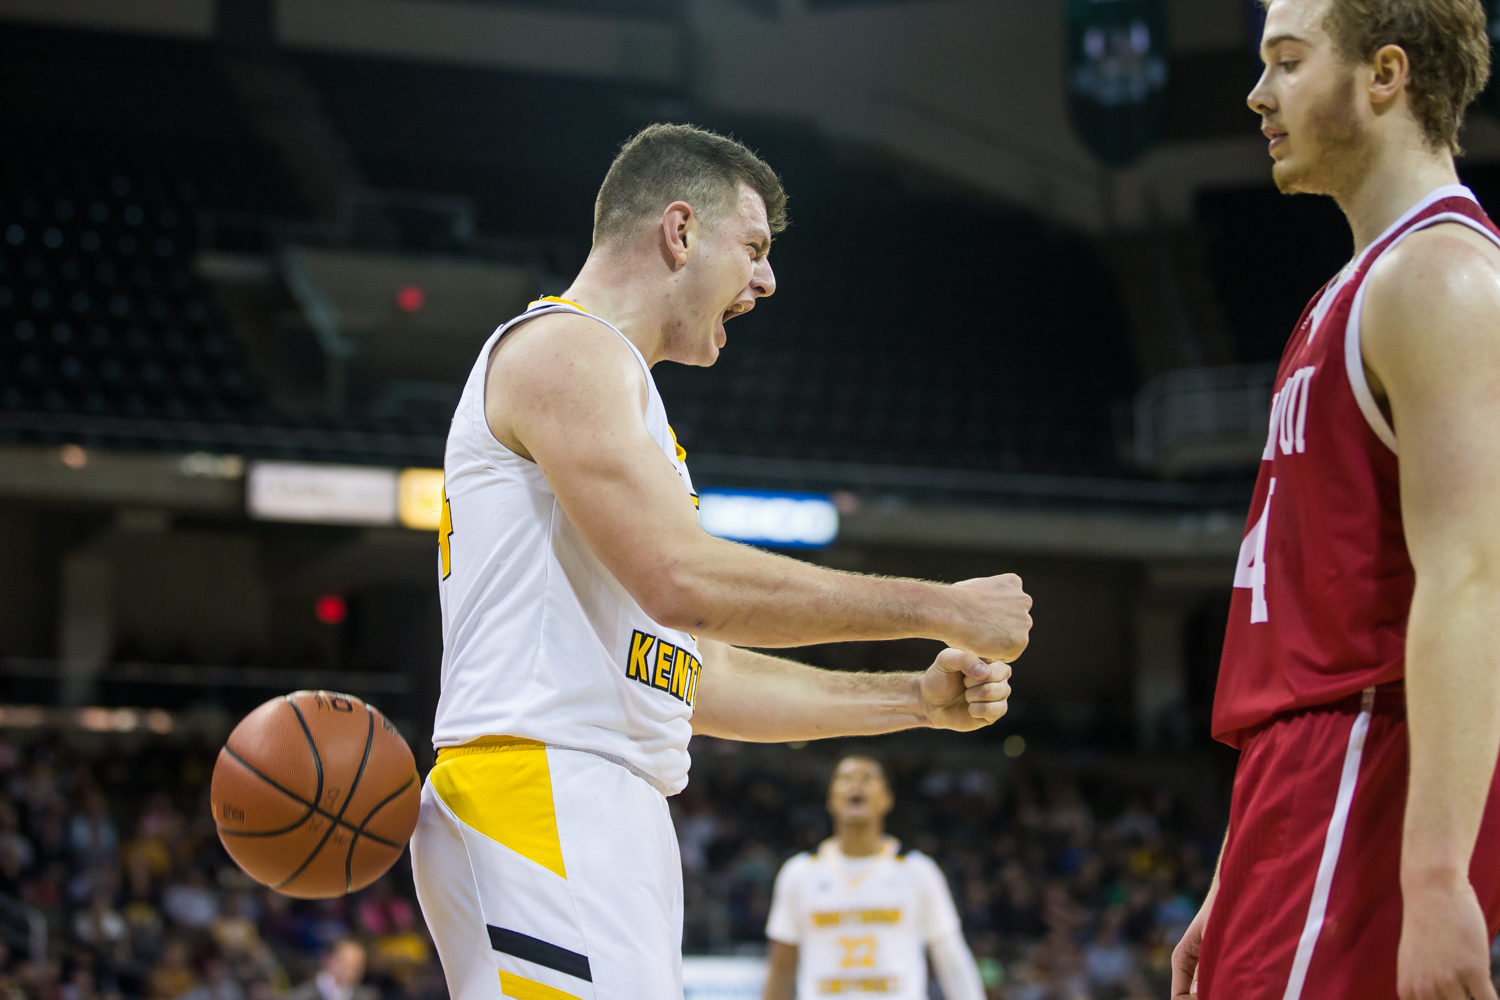 Drew McDonald (34) reacts to a point during the game against IUPUI. McDonald had 24 points on the game.